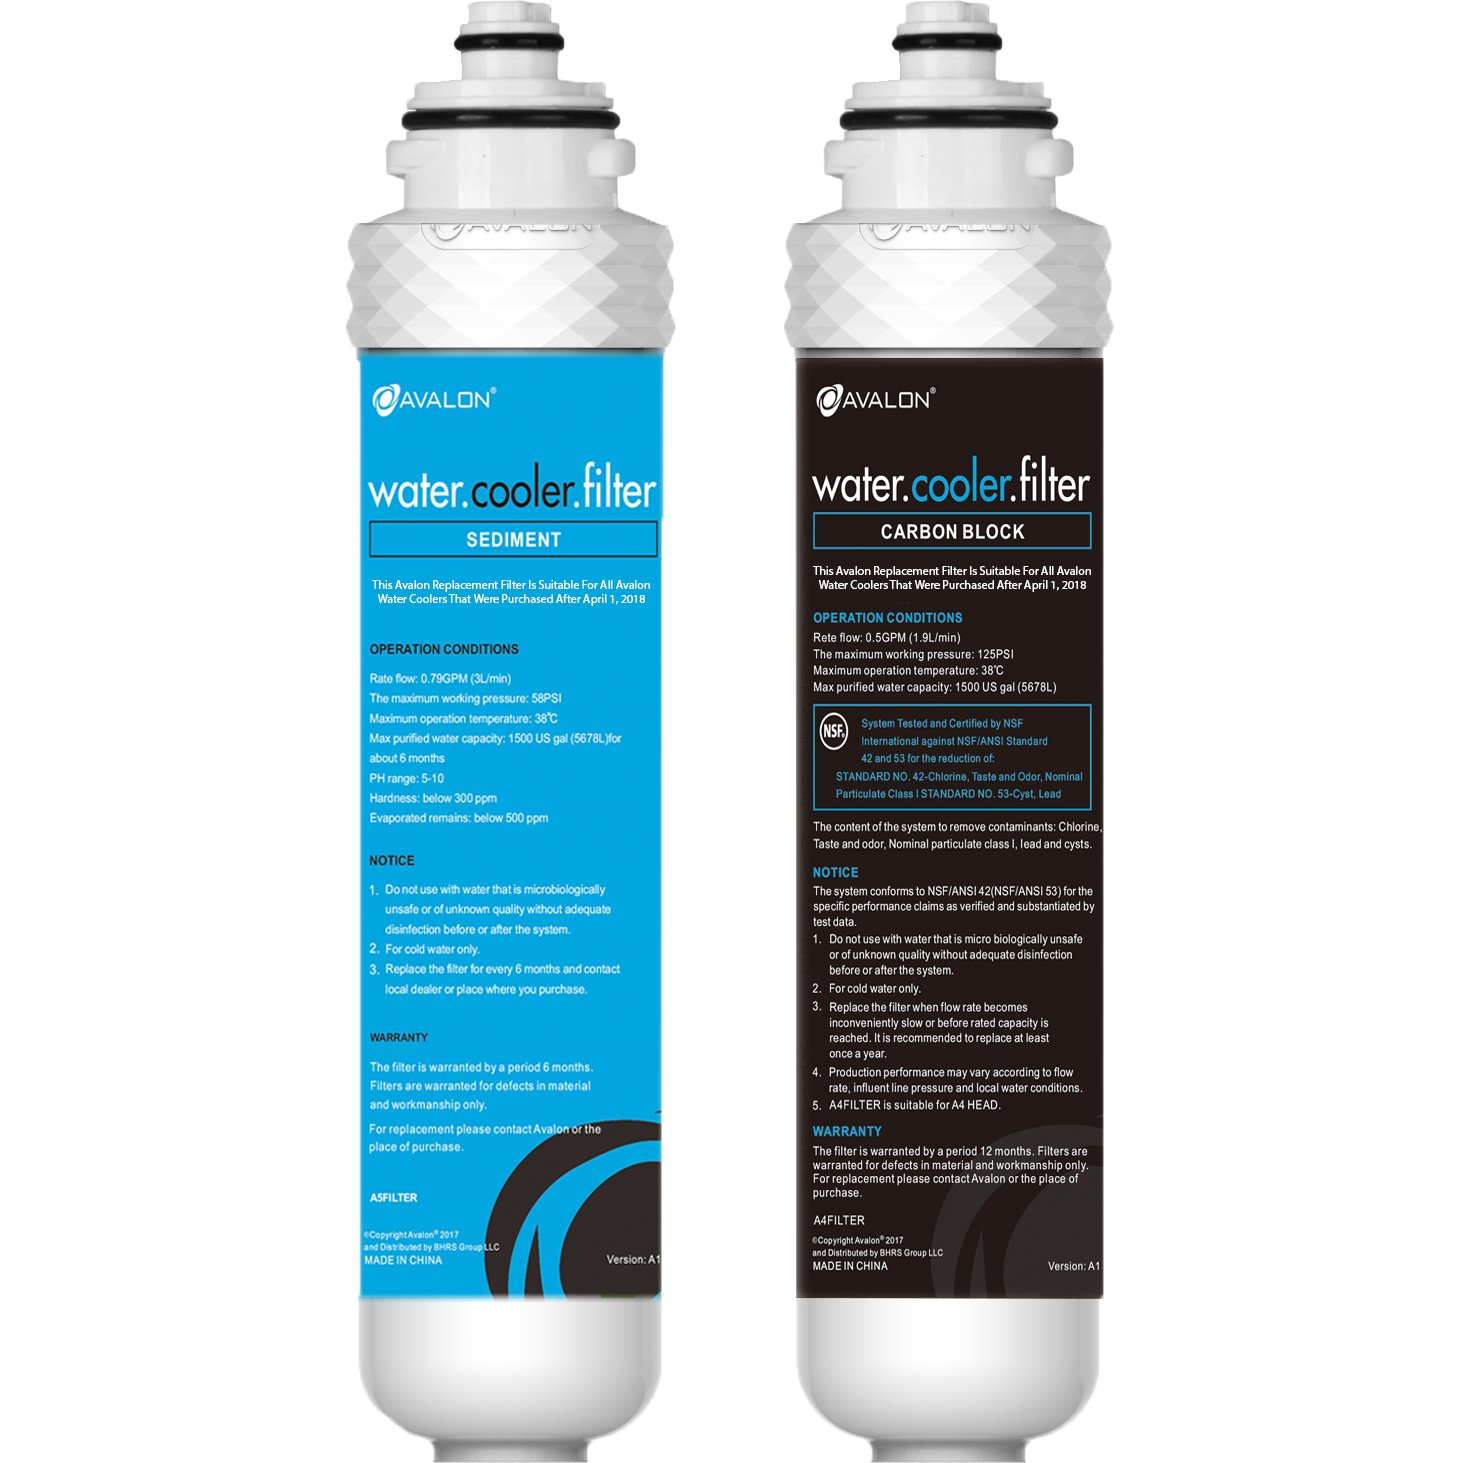 Avalon 2 Stage Replacement Filters For Avalon Branded Bottleless Water Coolers ** WILL ONLY FIT COOLERS PURCHASED AFTER APRIL 1, 2018**, NSF Certified, 1500 Gallons